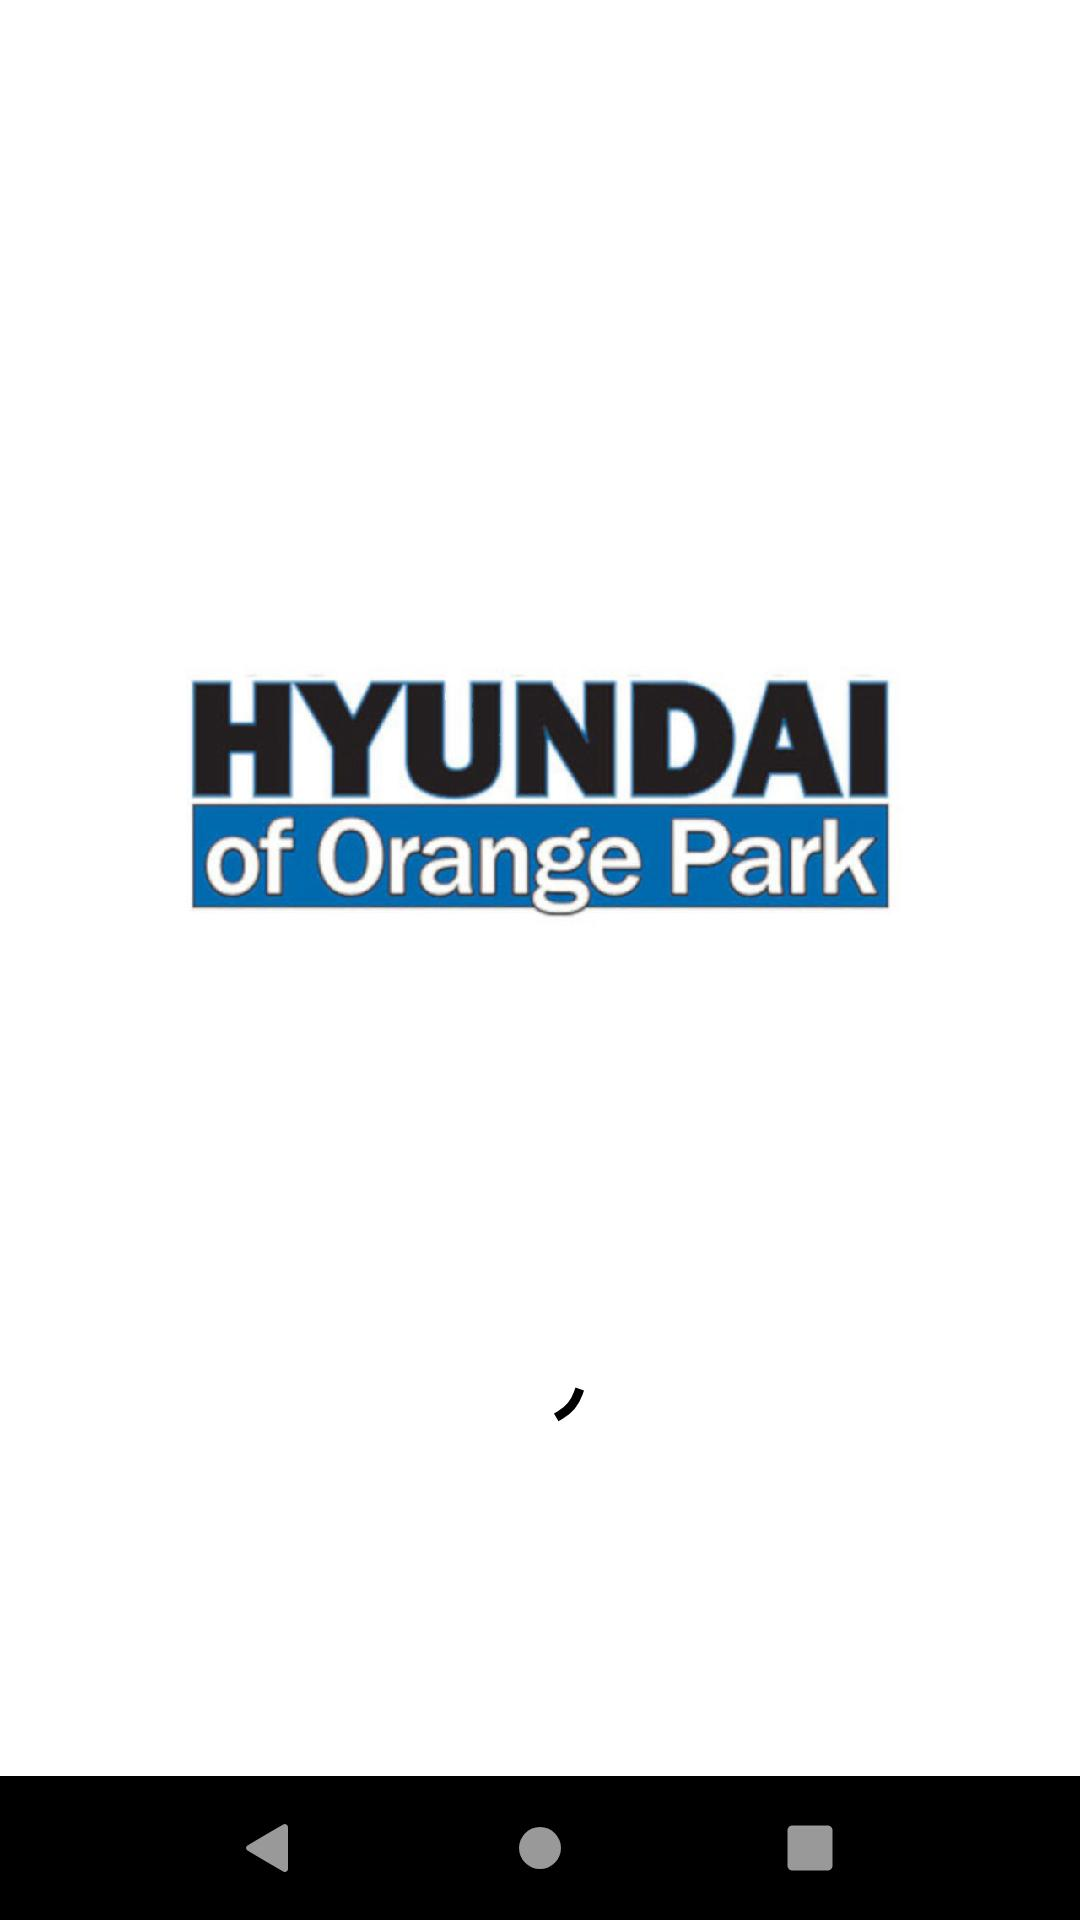 Hyundai Of Orange Park >> Hyundai Of Orange Park For Android Apk Download